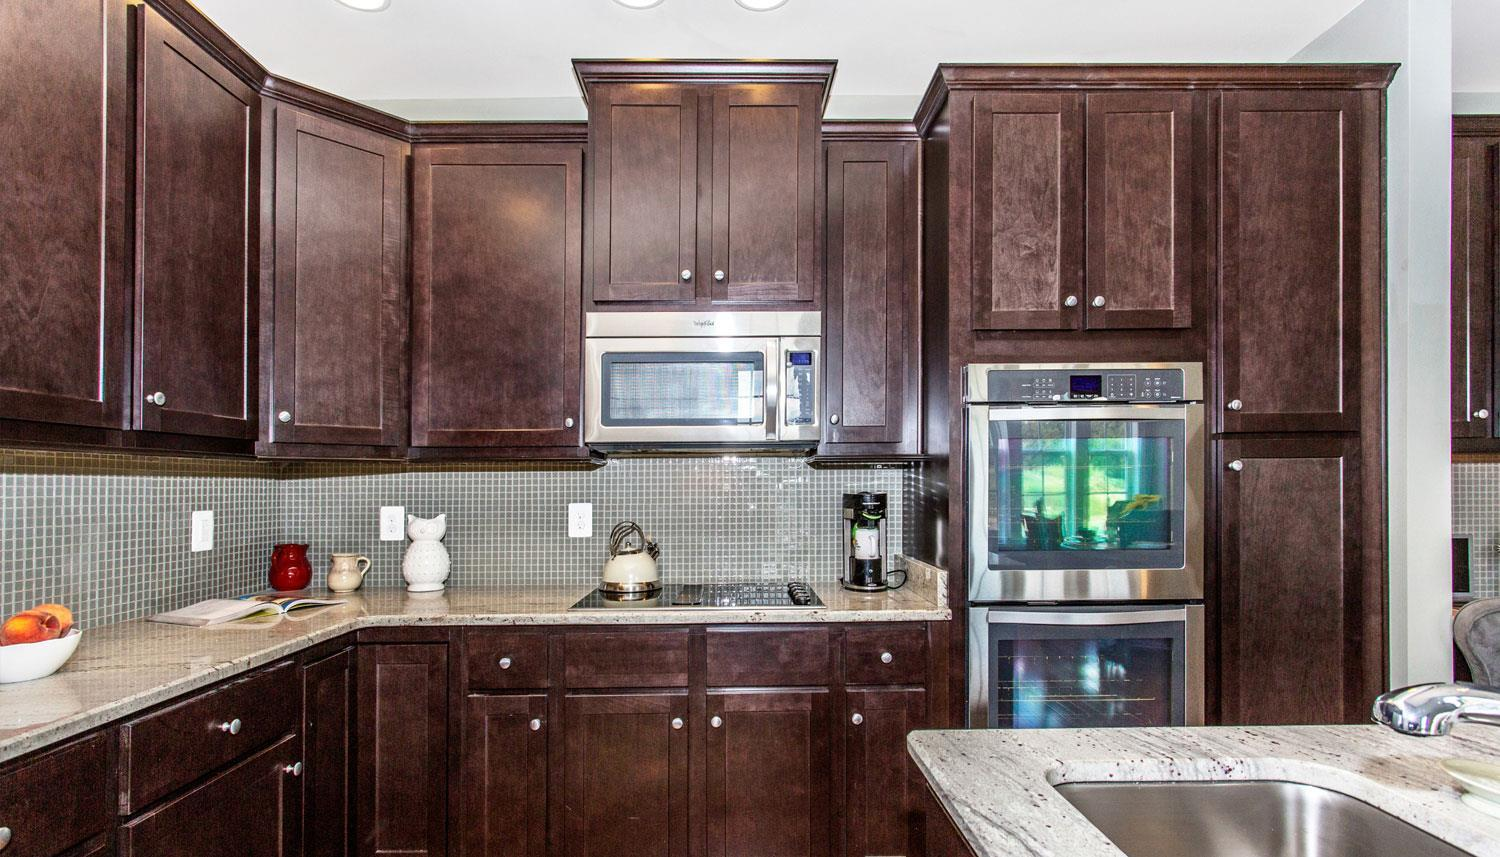 Kitchen featured in the Longstreet II By Dan Ryan Builders in Hagerstown, PA